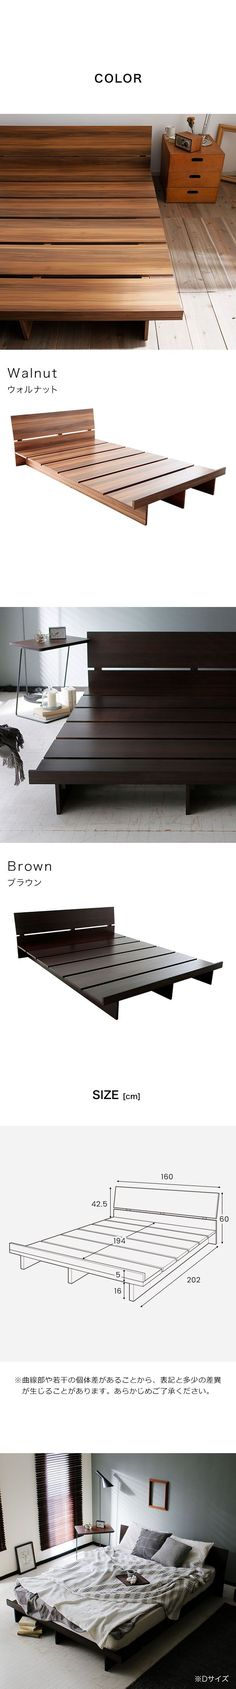 Bed frame idea